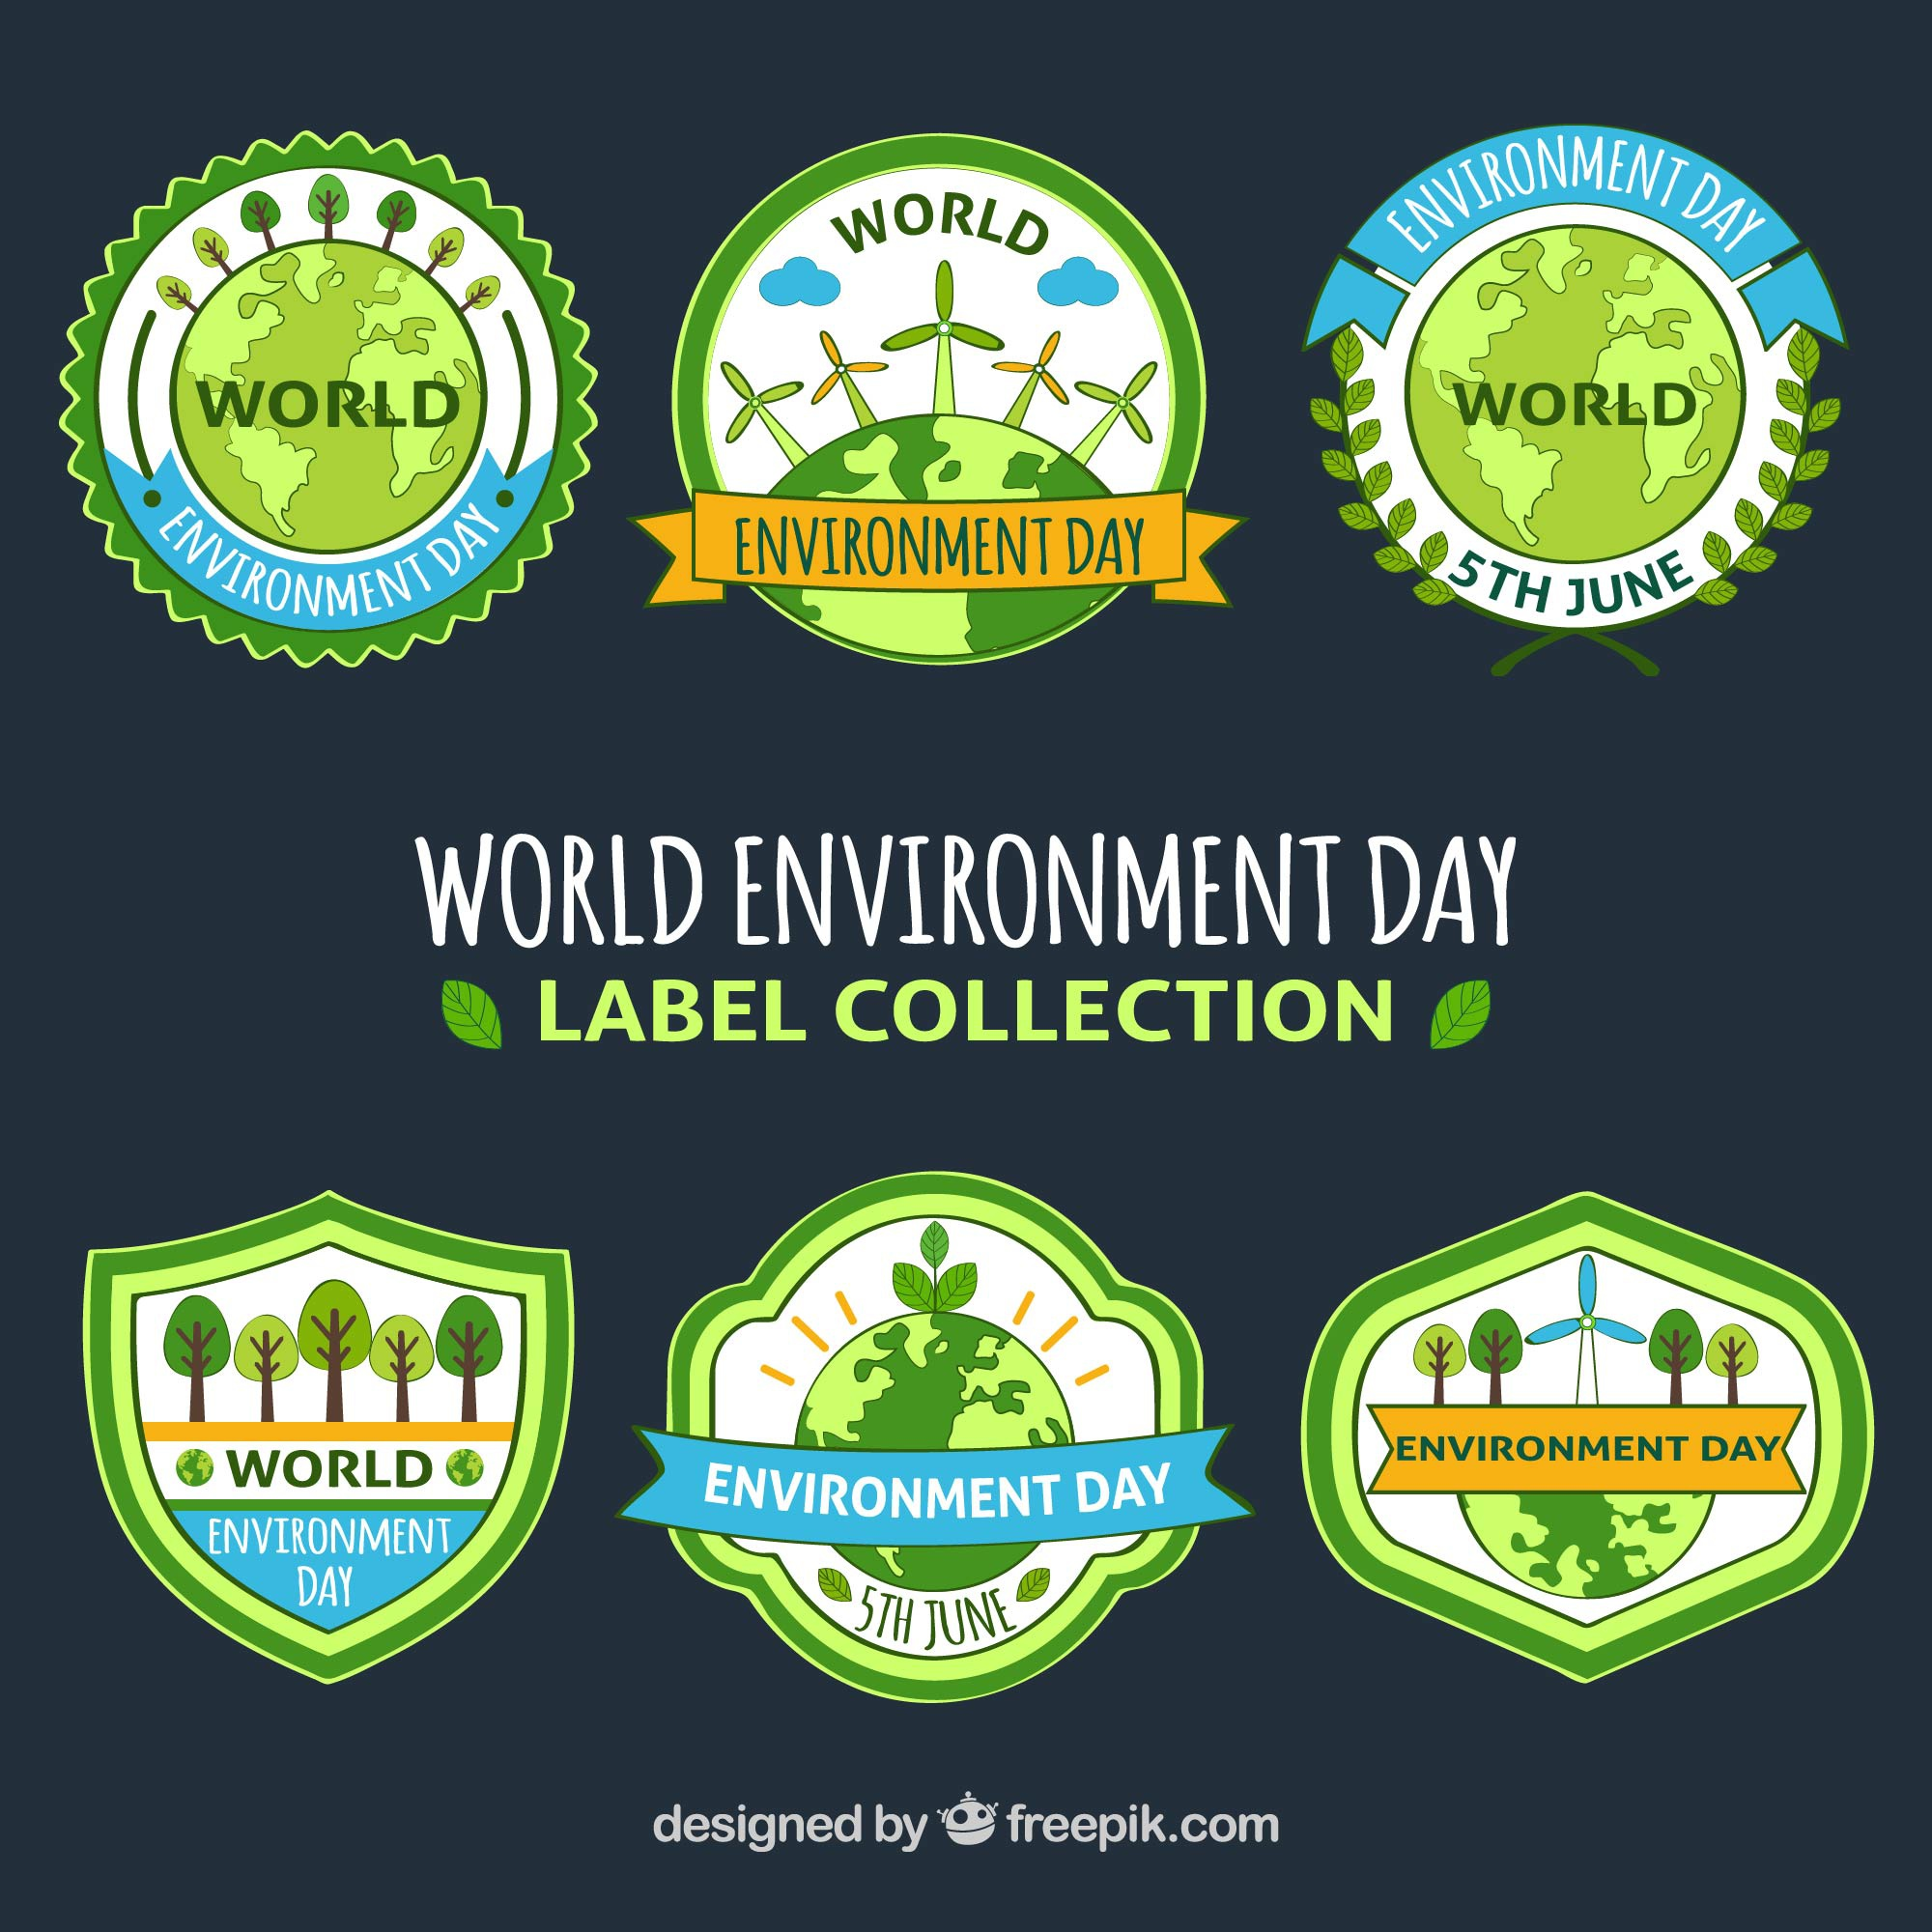 World environment day label collection with ribbons